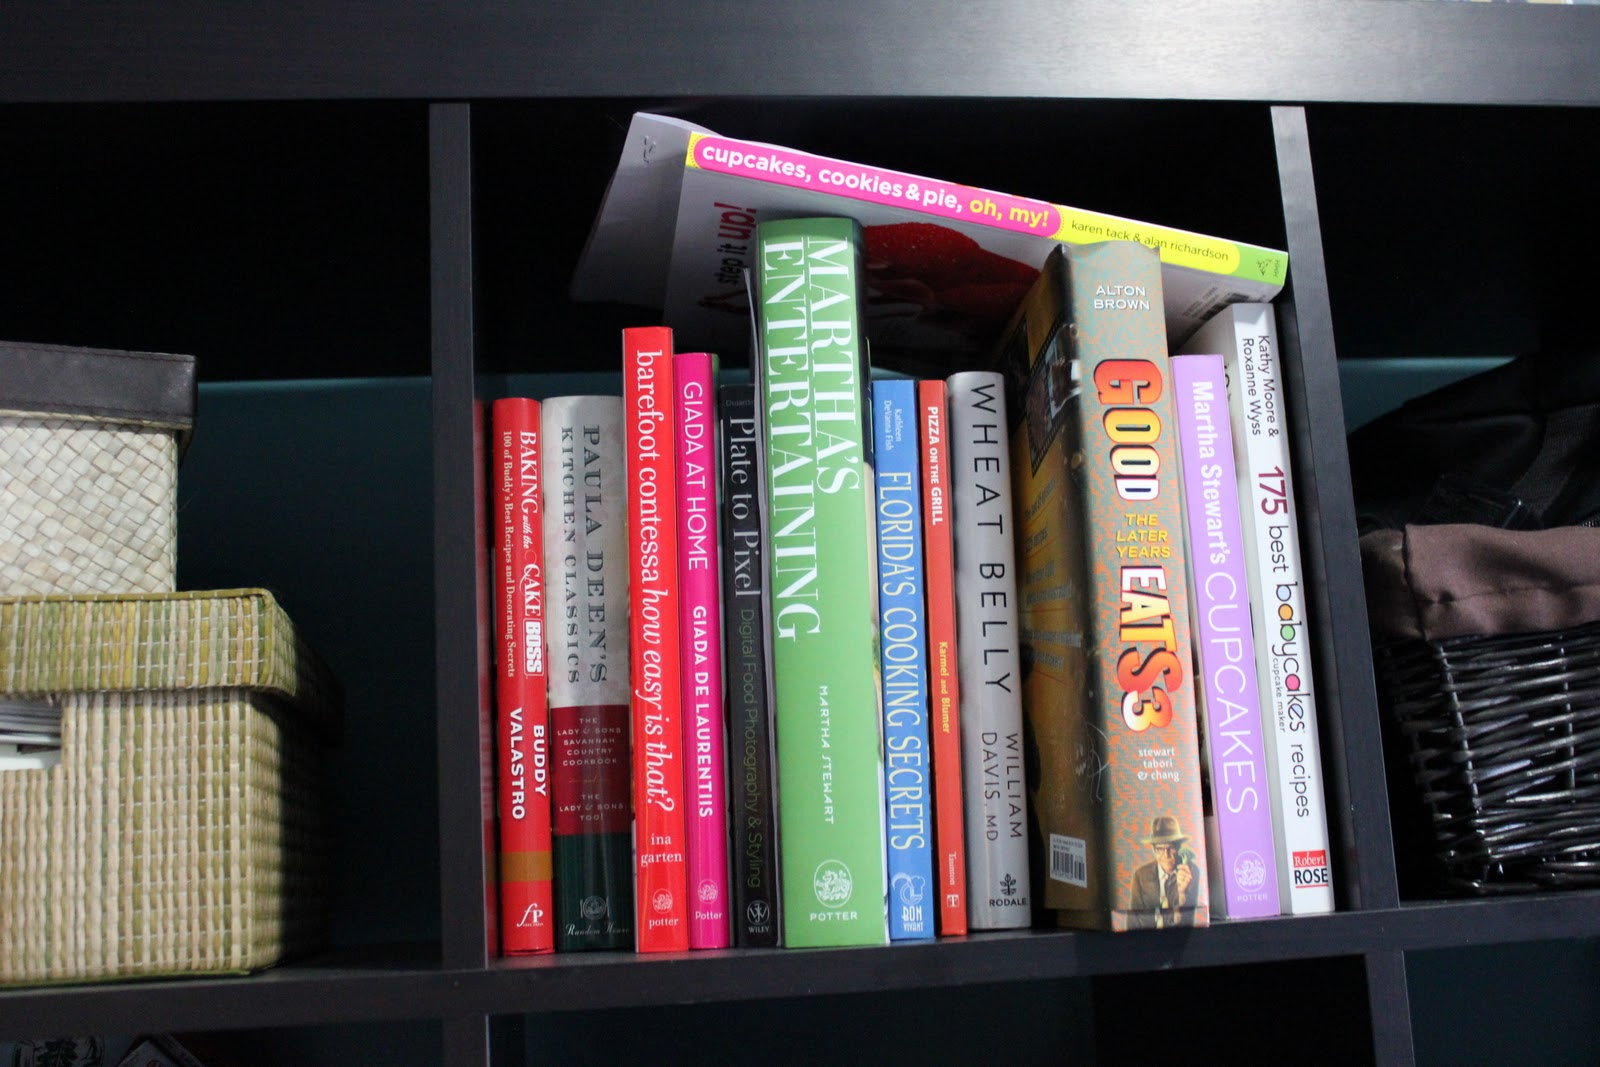 And There Is Always A Stack Of Cookbooks On The Kitchen Table Or Counter Gleaned From Their Proper Storage Spot